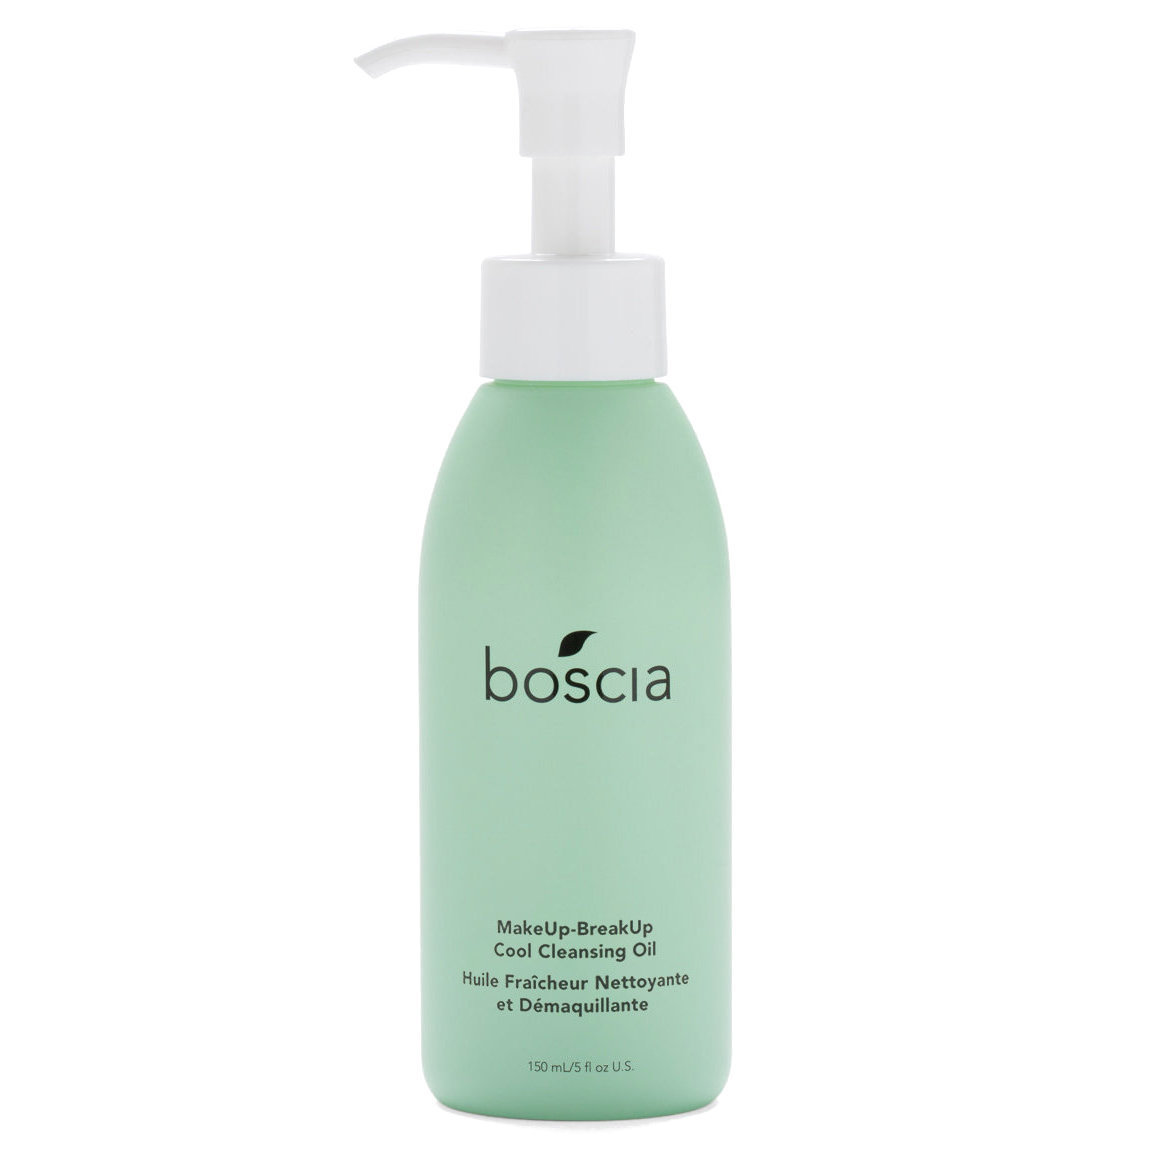 boscia MakeUp-BreakUp Cool Cleansing Oil 150 ml alternative view 1 - product swatch.